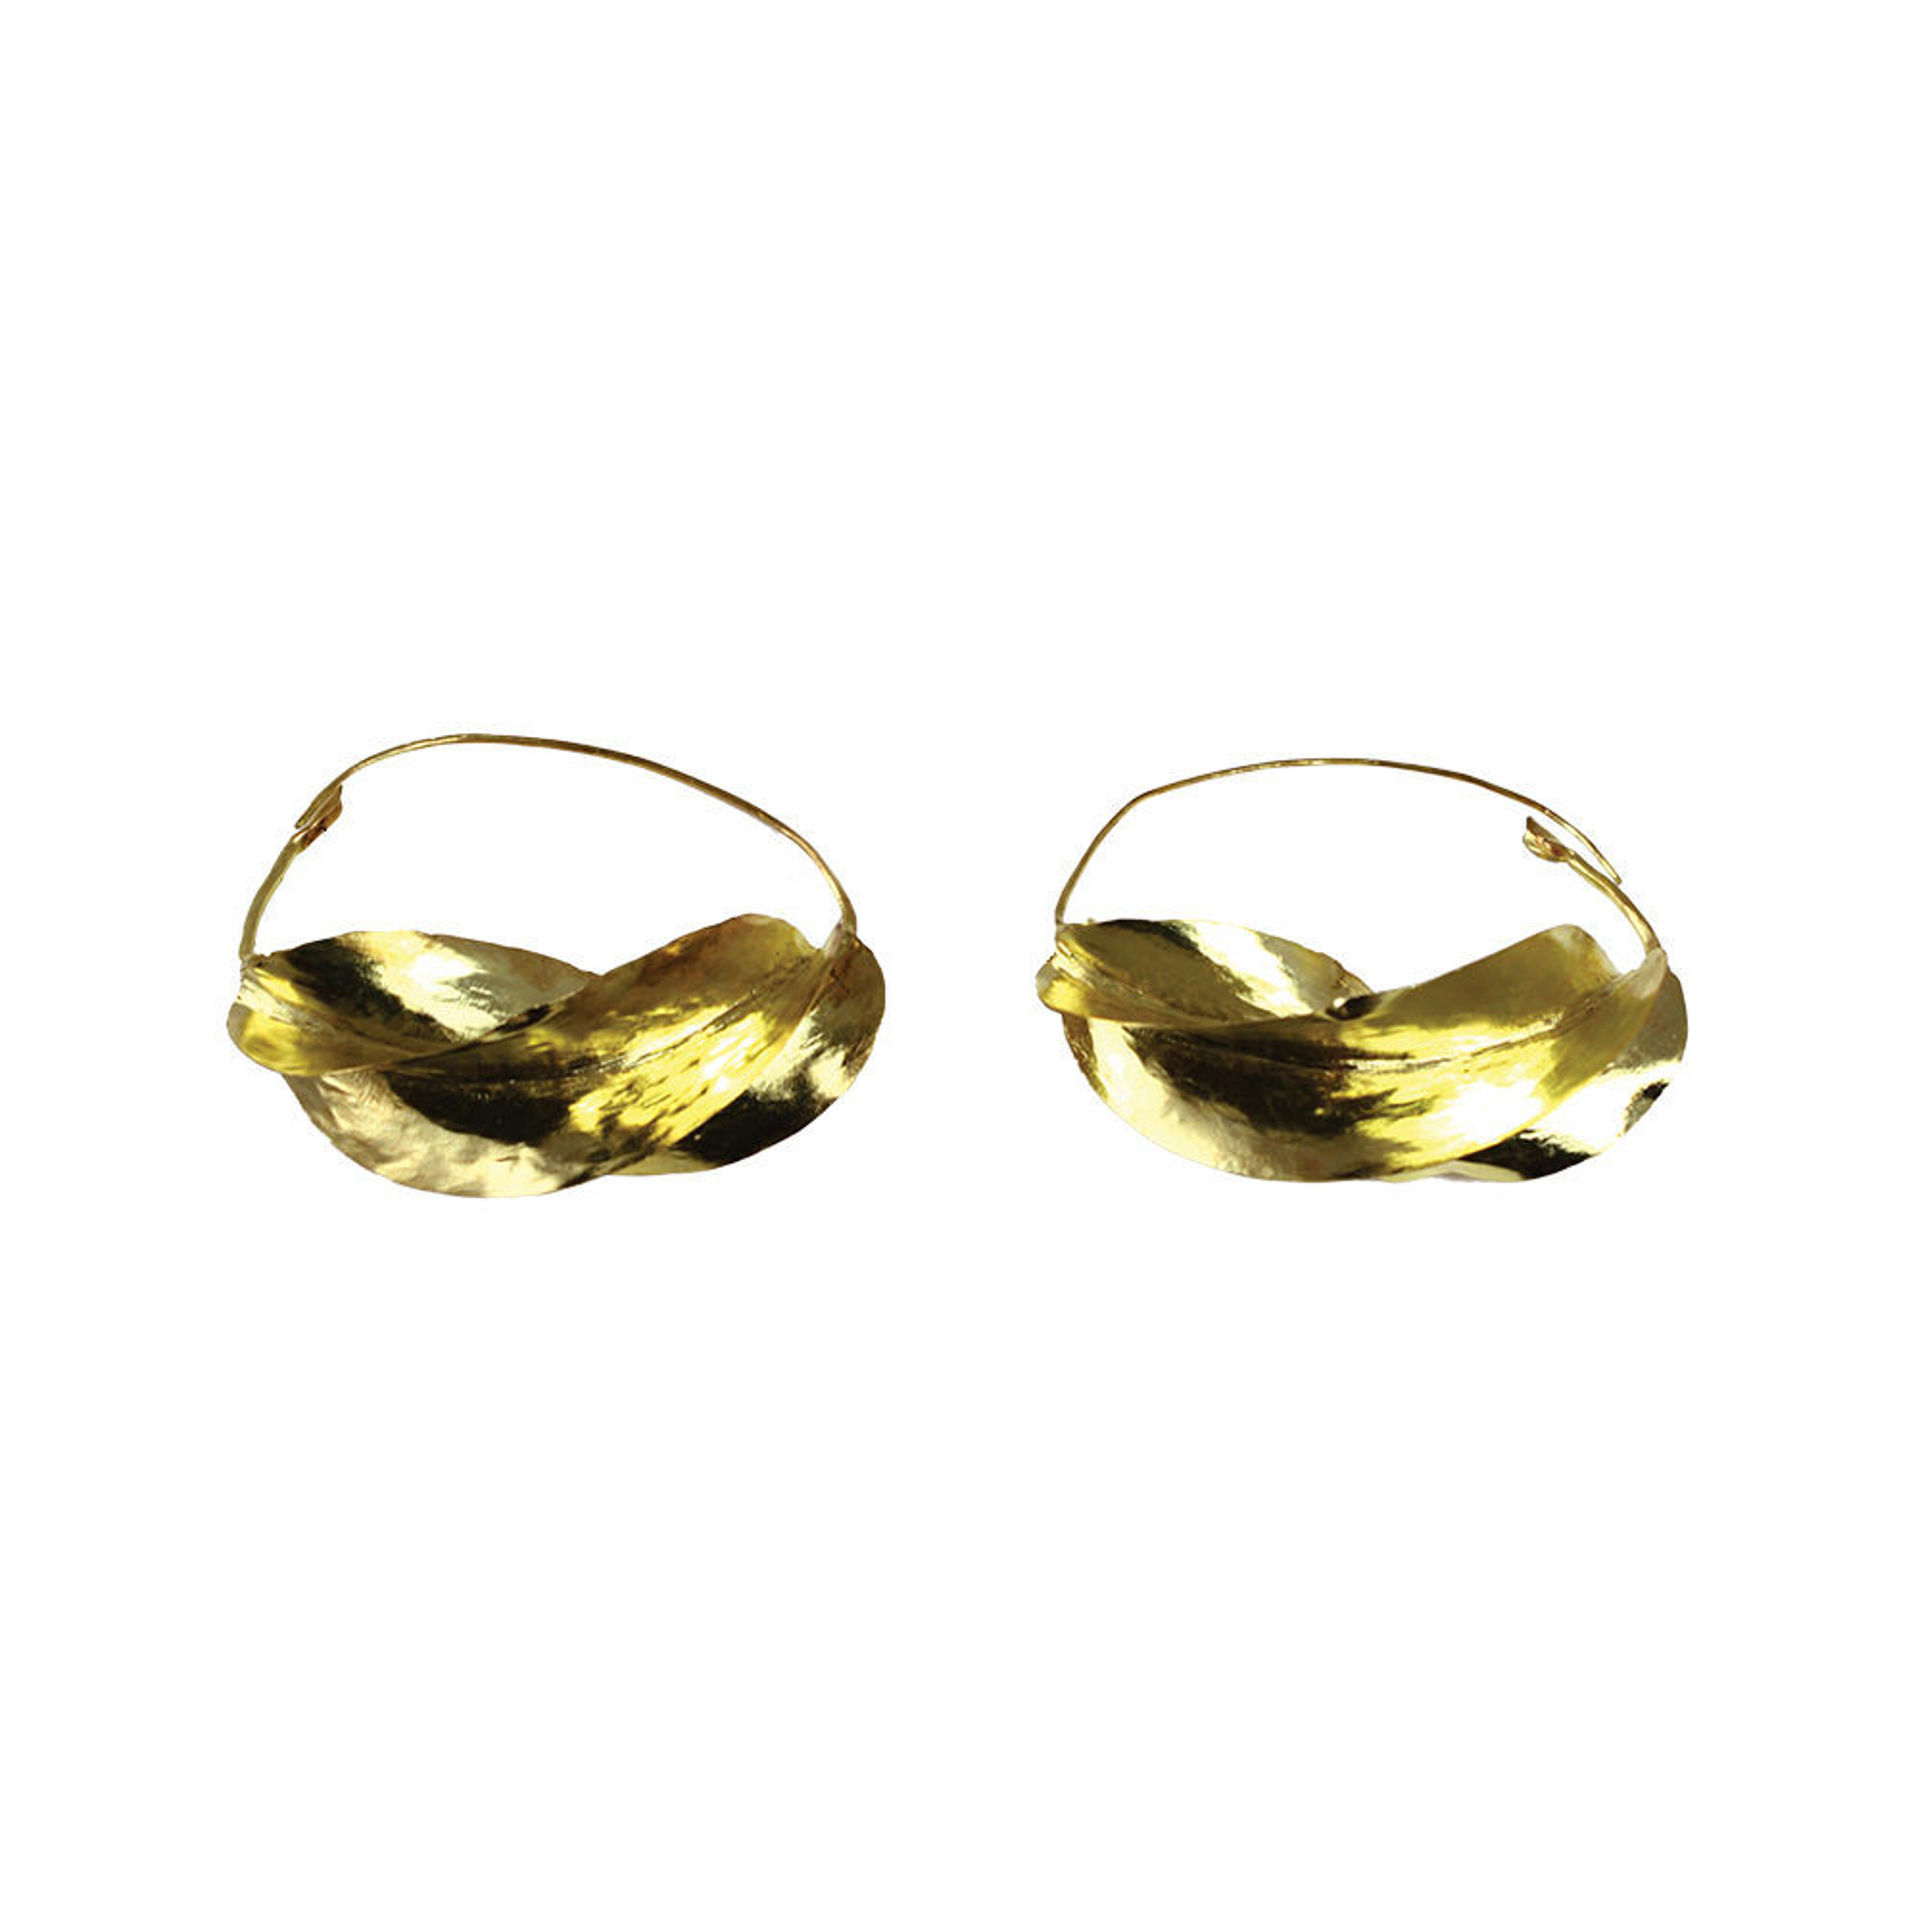 Picture of XL Over-Sized Fula Gold Earrings - 3""